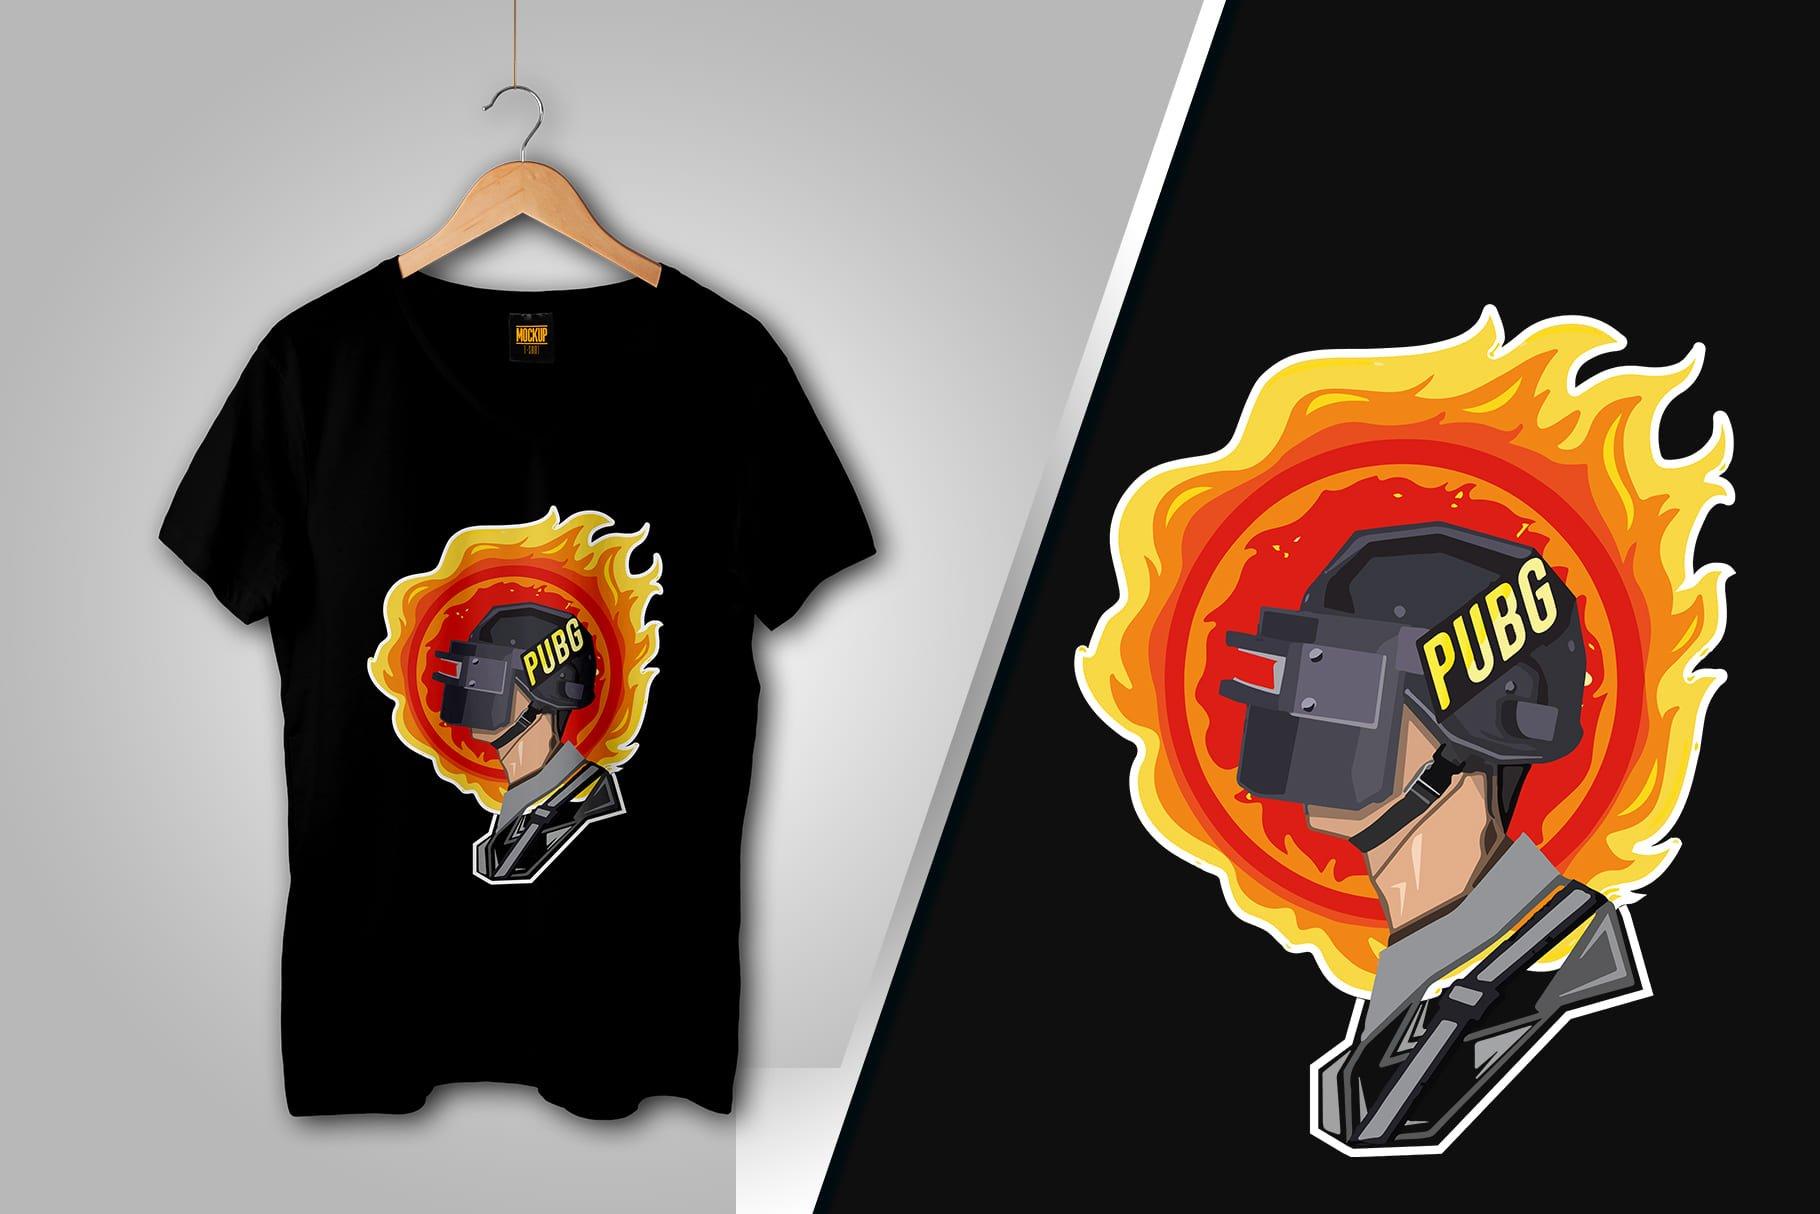 Black T-shirt with a man's head in profile in a helmet on fire.